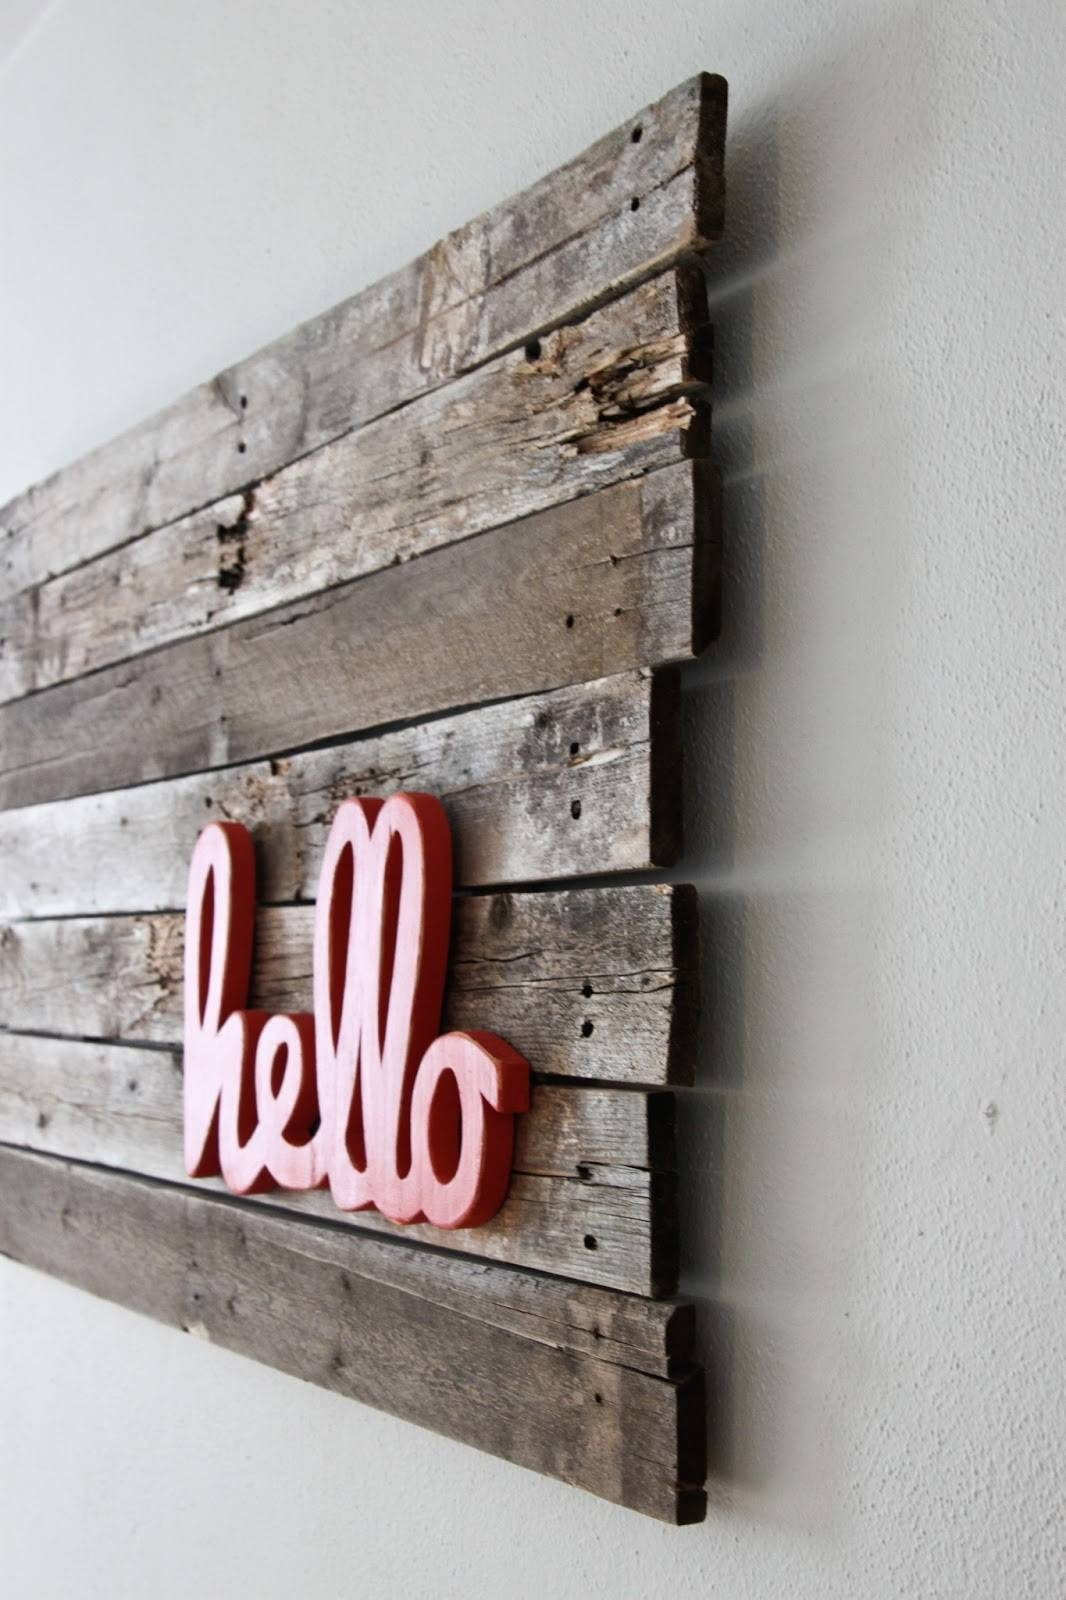 Wall Art Words Wooden Saw Word Like – Dma Homes | #89896 For 2018 Wooden Words Wall Art (View 2 of 30)